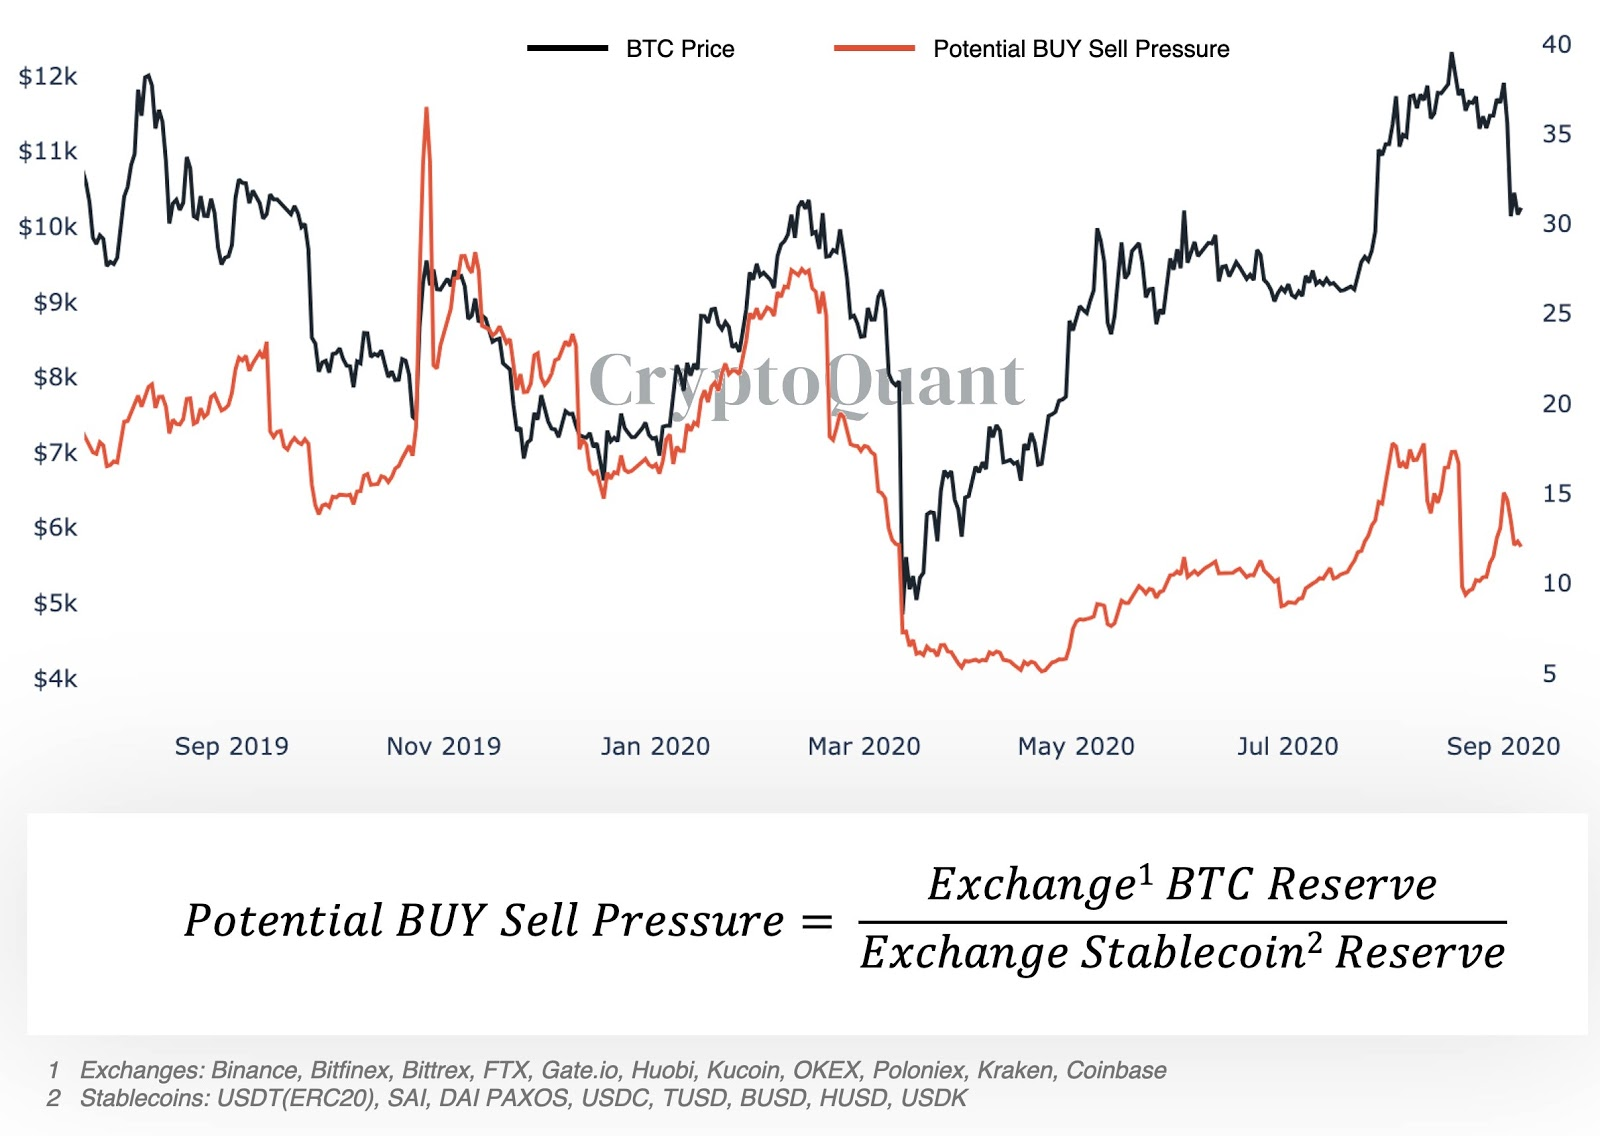 Bitcoin potential buy/ sell pressure chart